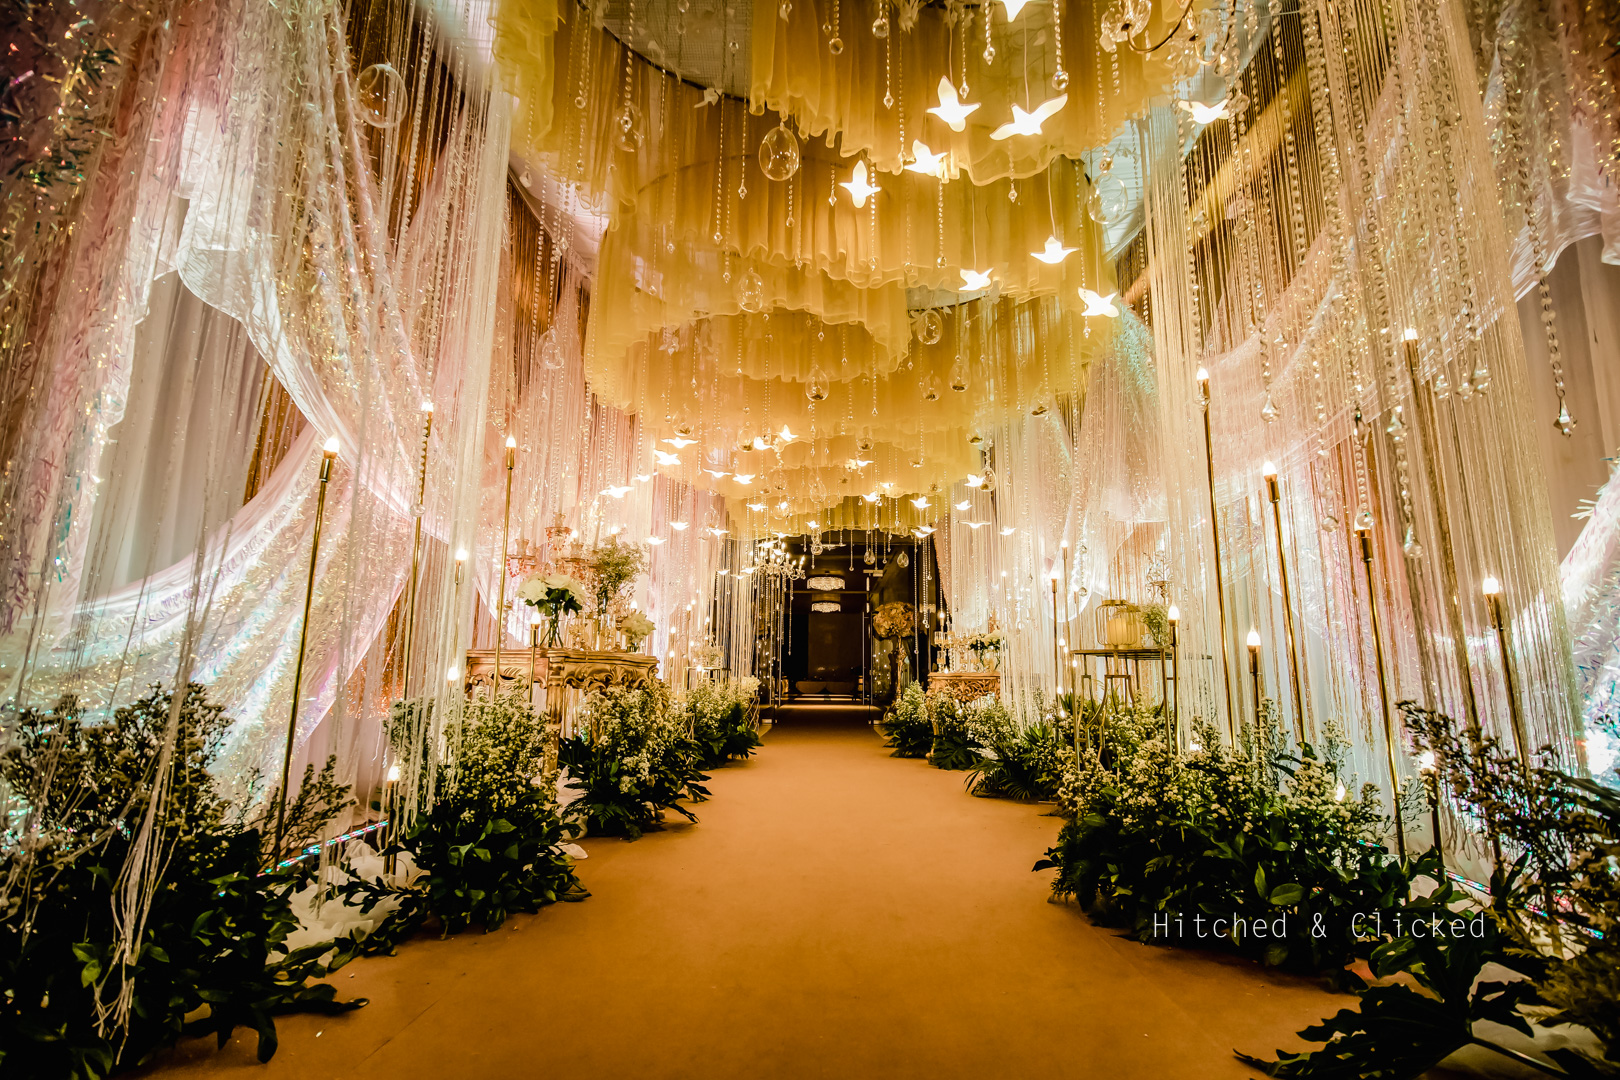 Decor with chandeliers